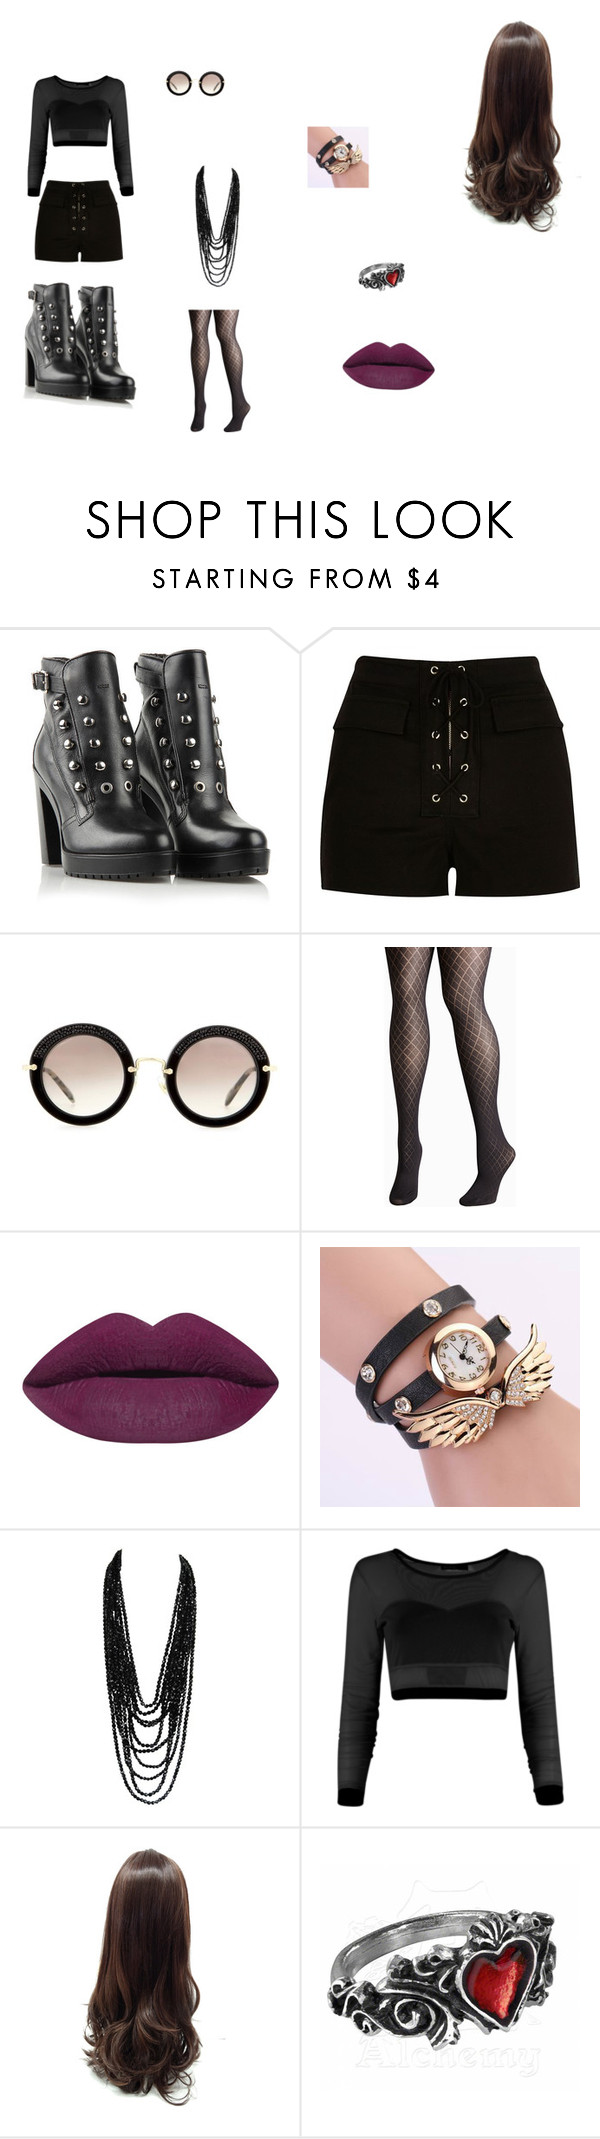 """stylist 3"" by kassy-almeida on Polyvore featuring beleza, Diesel, River Island, Miu Miu e Avenue"